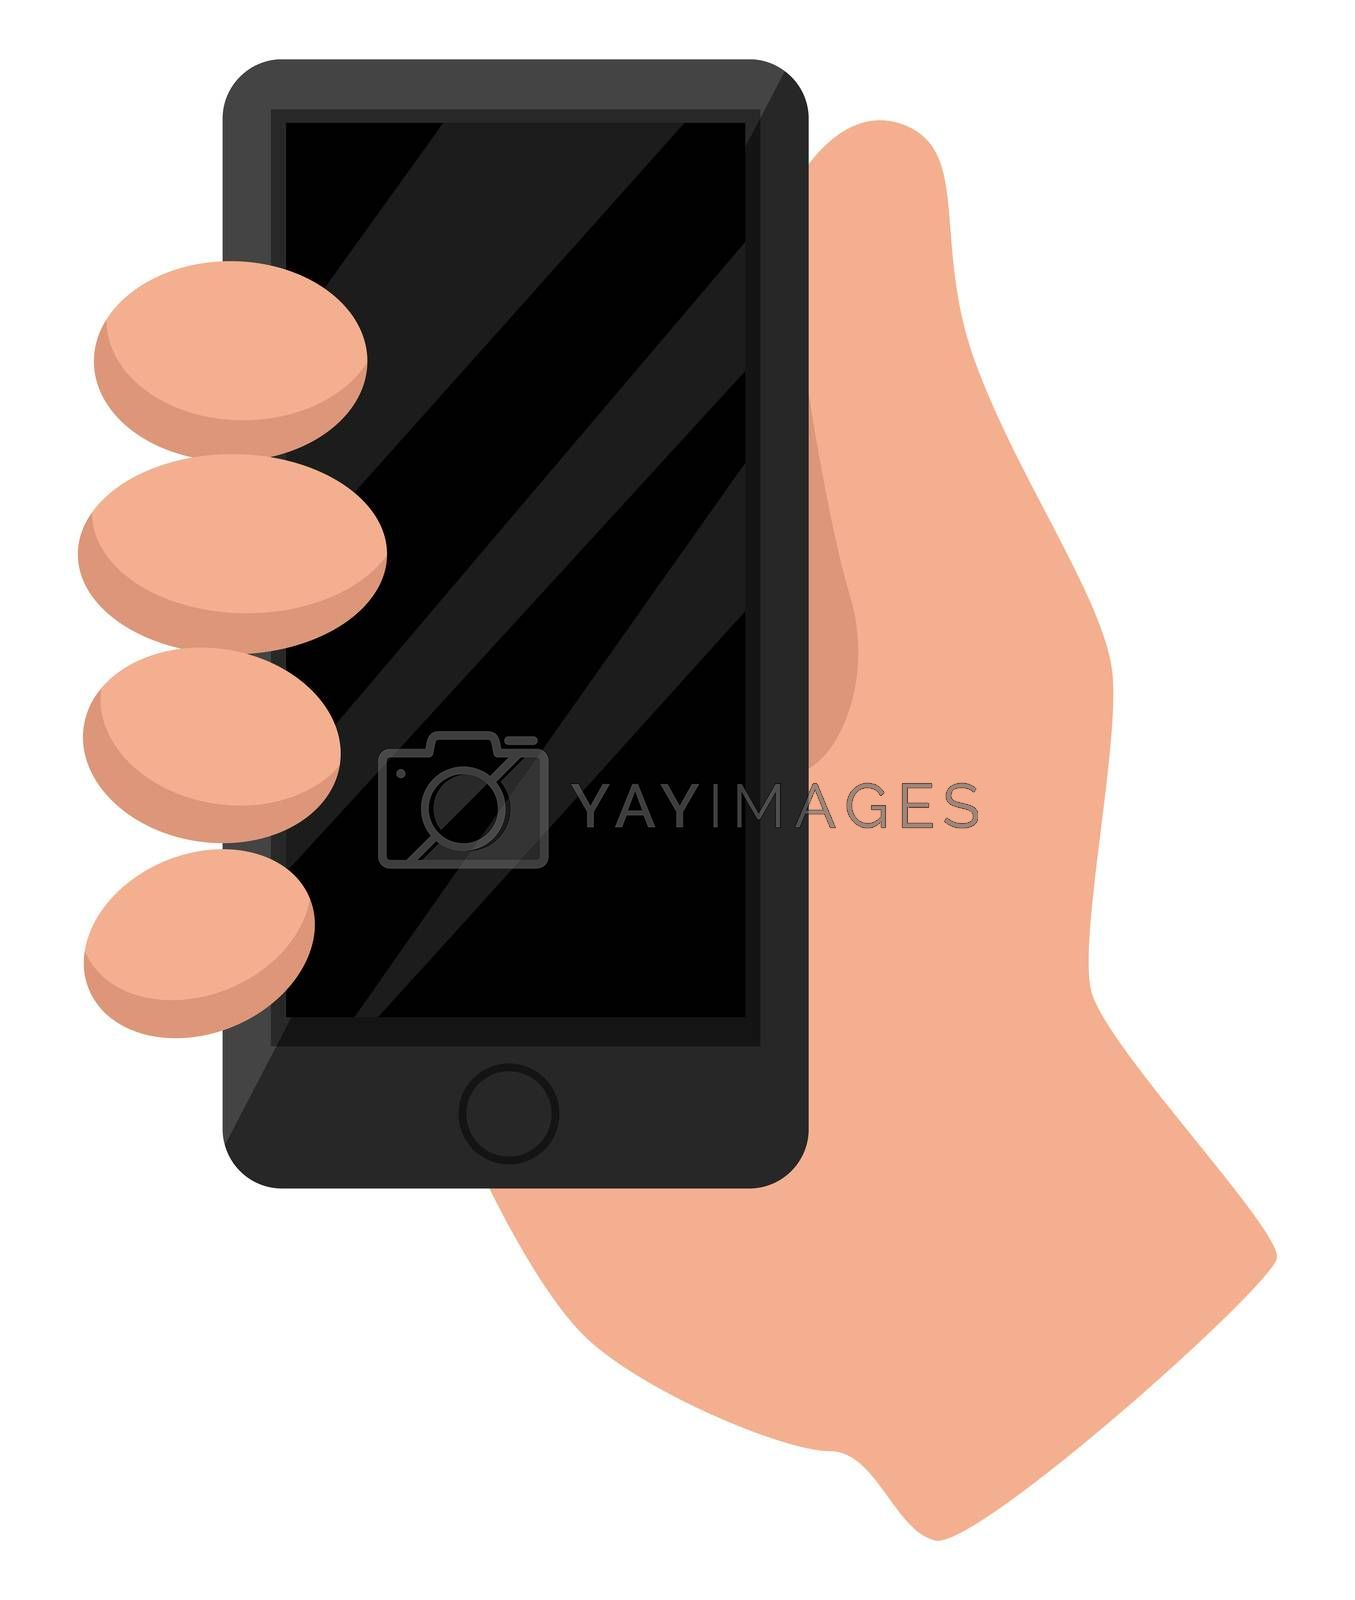 Phone in hand, illustration, vector on white background